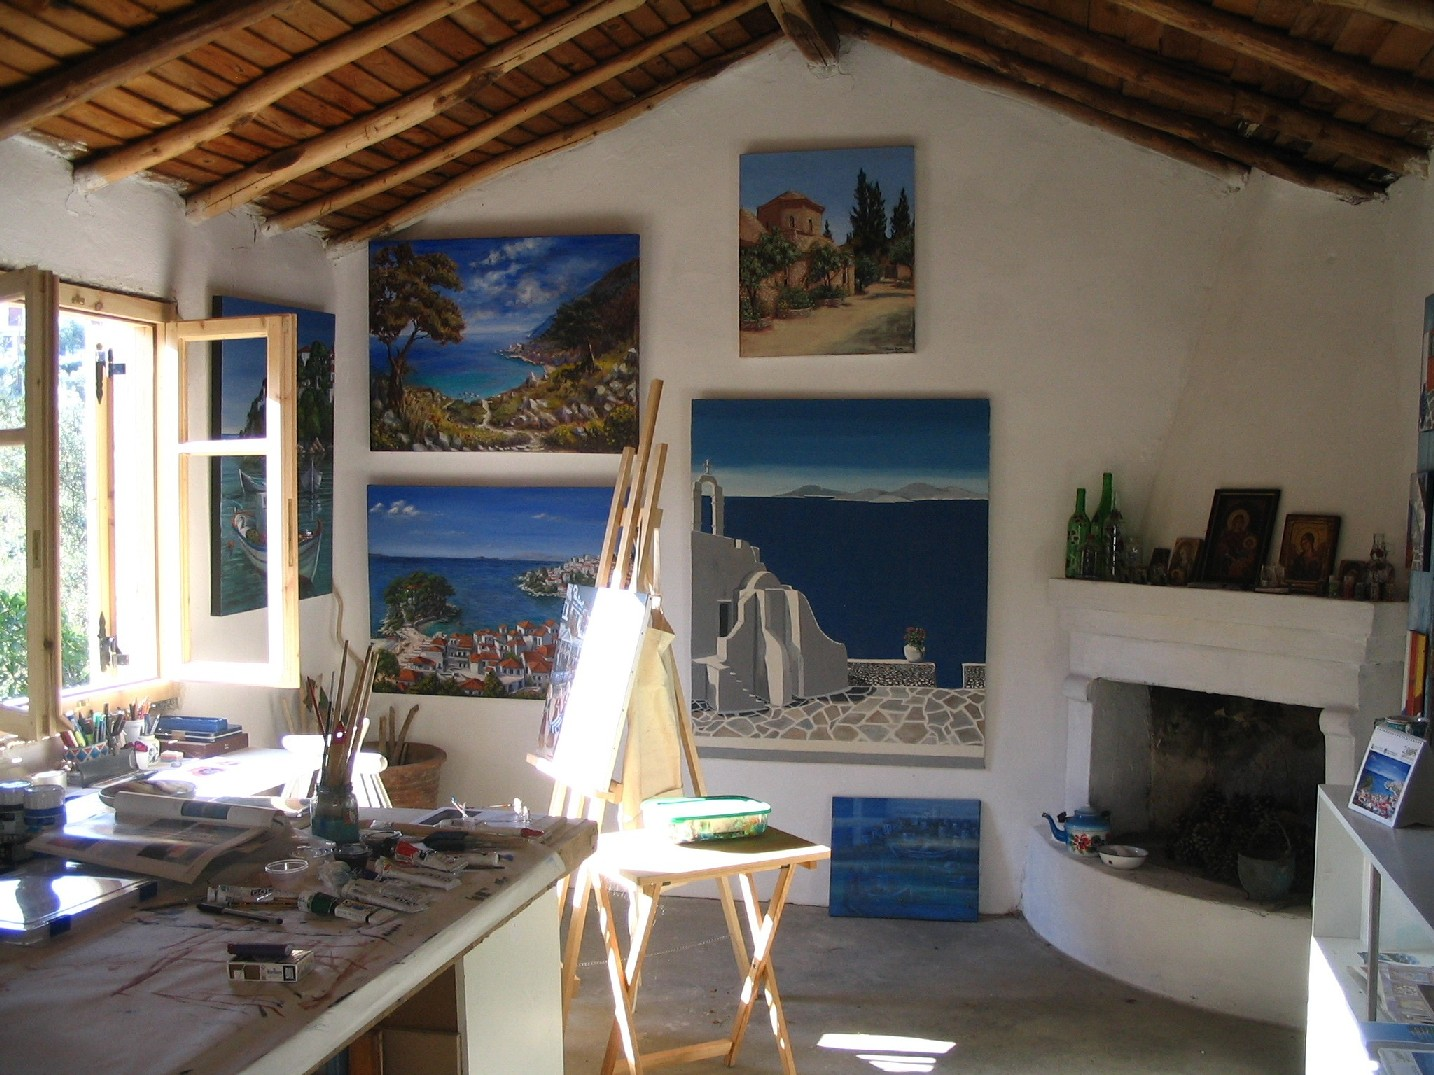 1000+ Images About Artist And Craftsmen Studio Spaces On